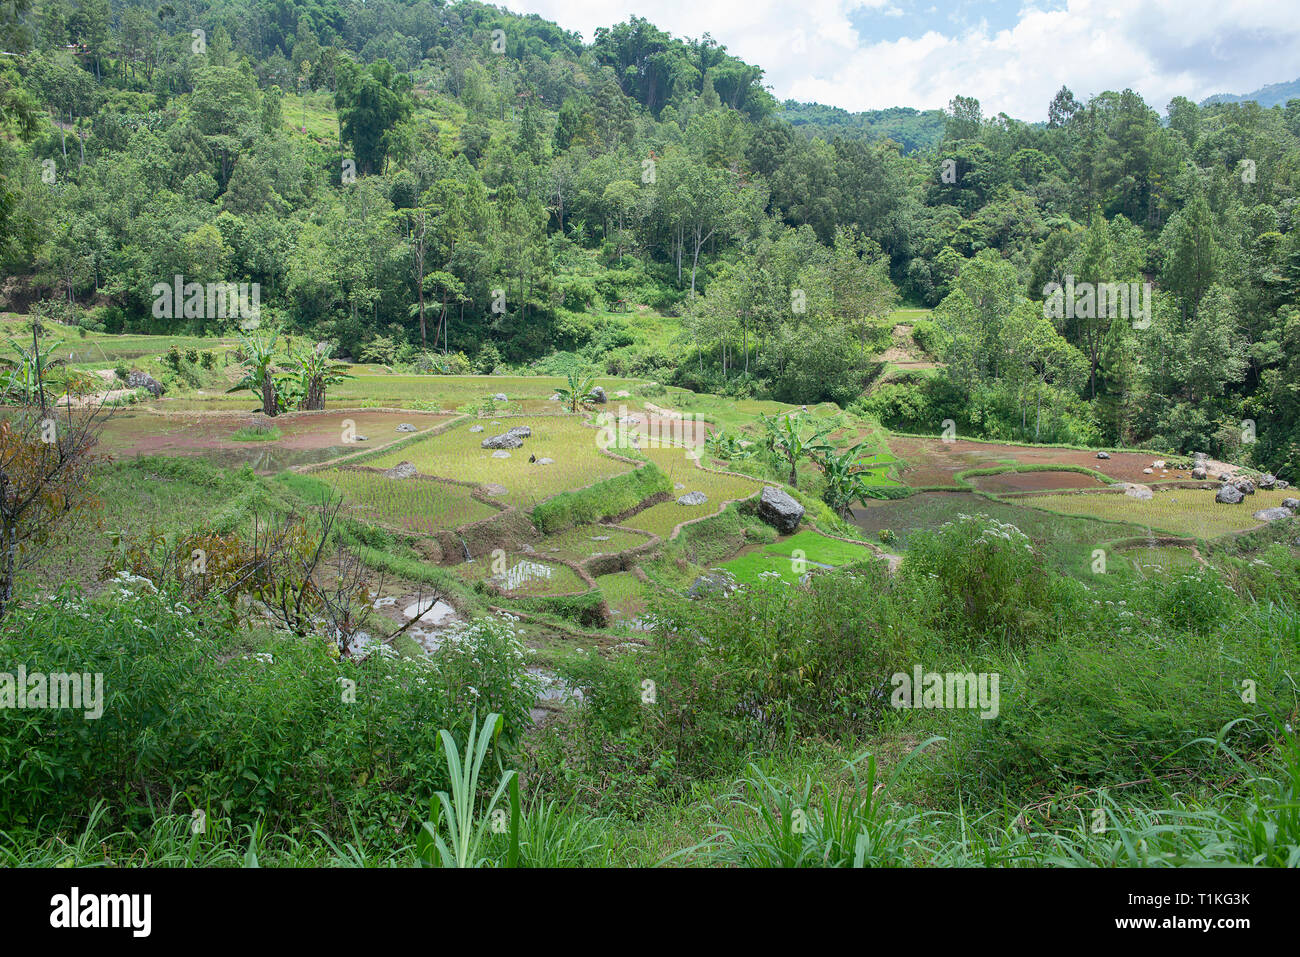 Green and brown rice terrace fields in Tana Toraja, South Sulawesi, Indonesia - Stock Image